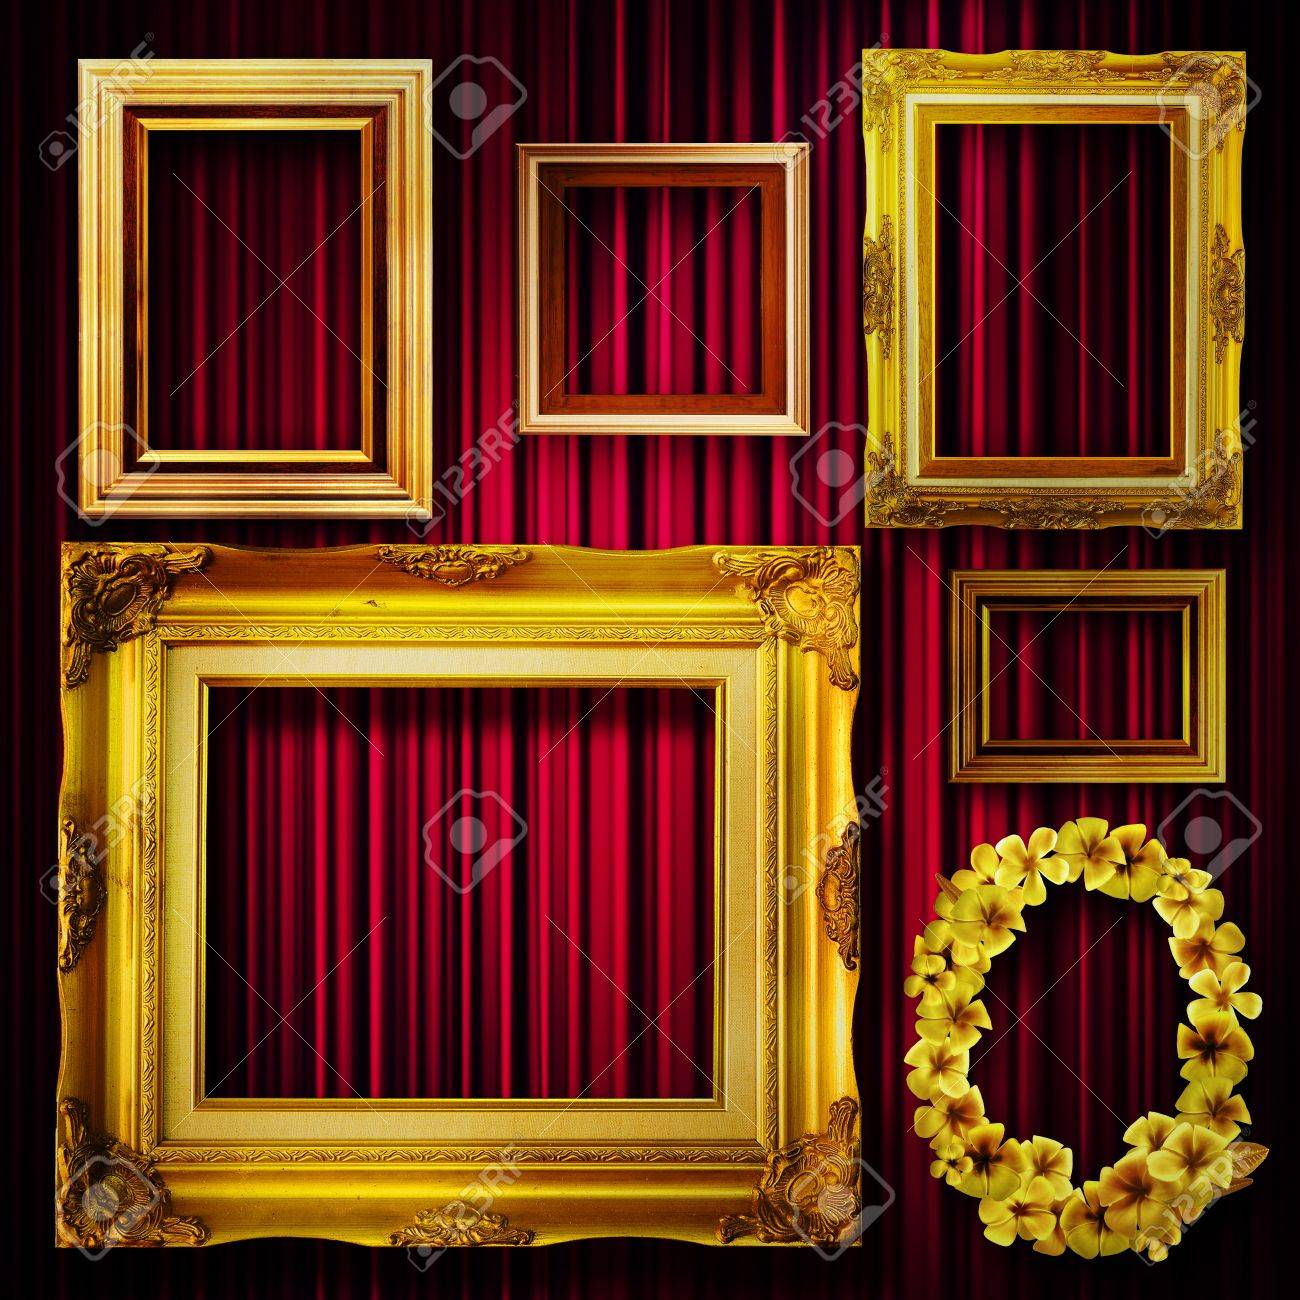 Gallery Display Vintage Gold Frames On Deep Red Curtain Wall Stock